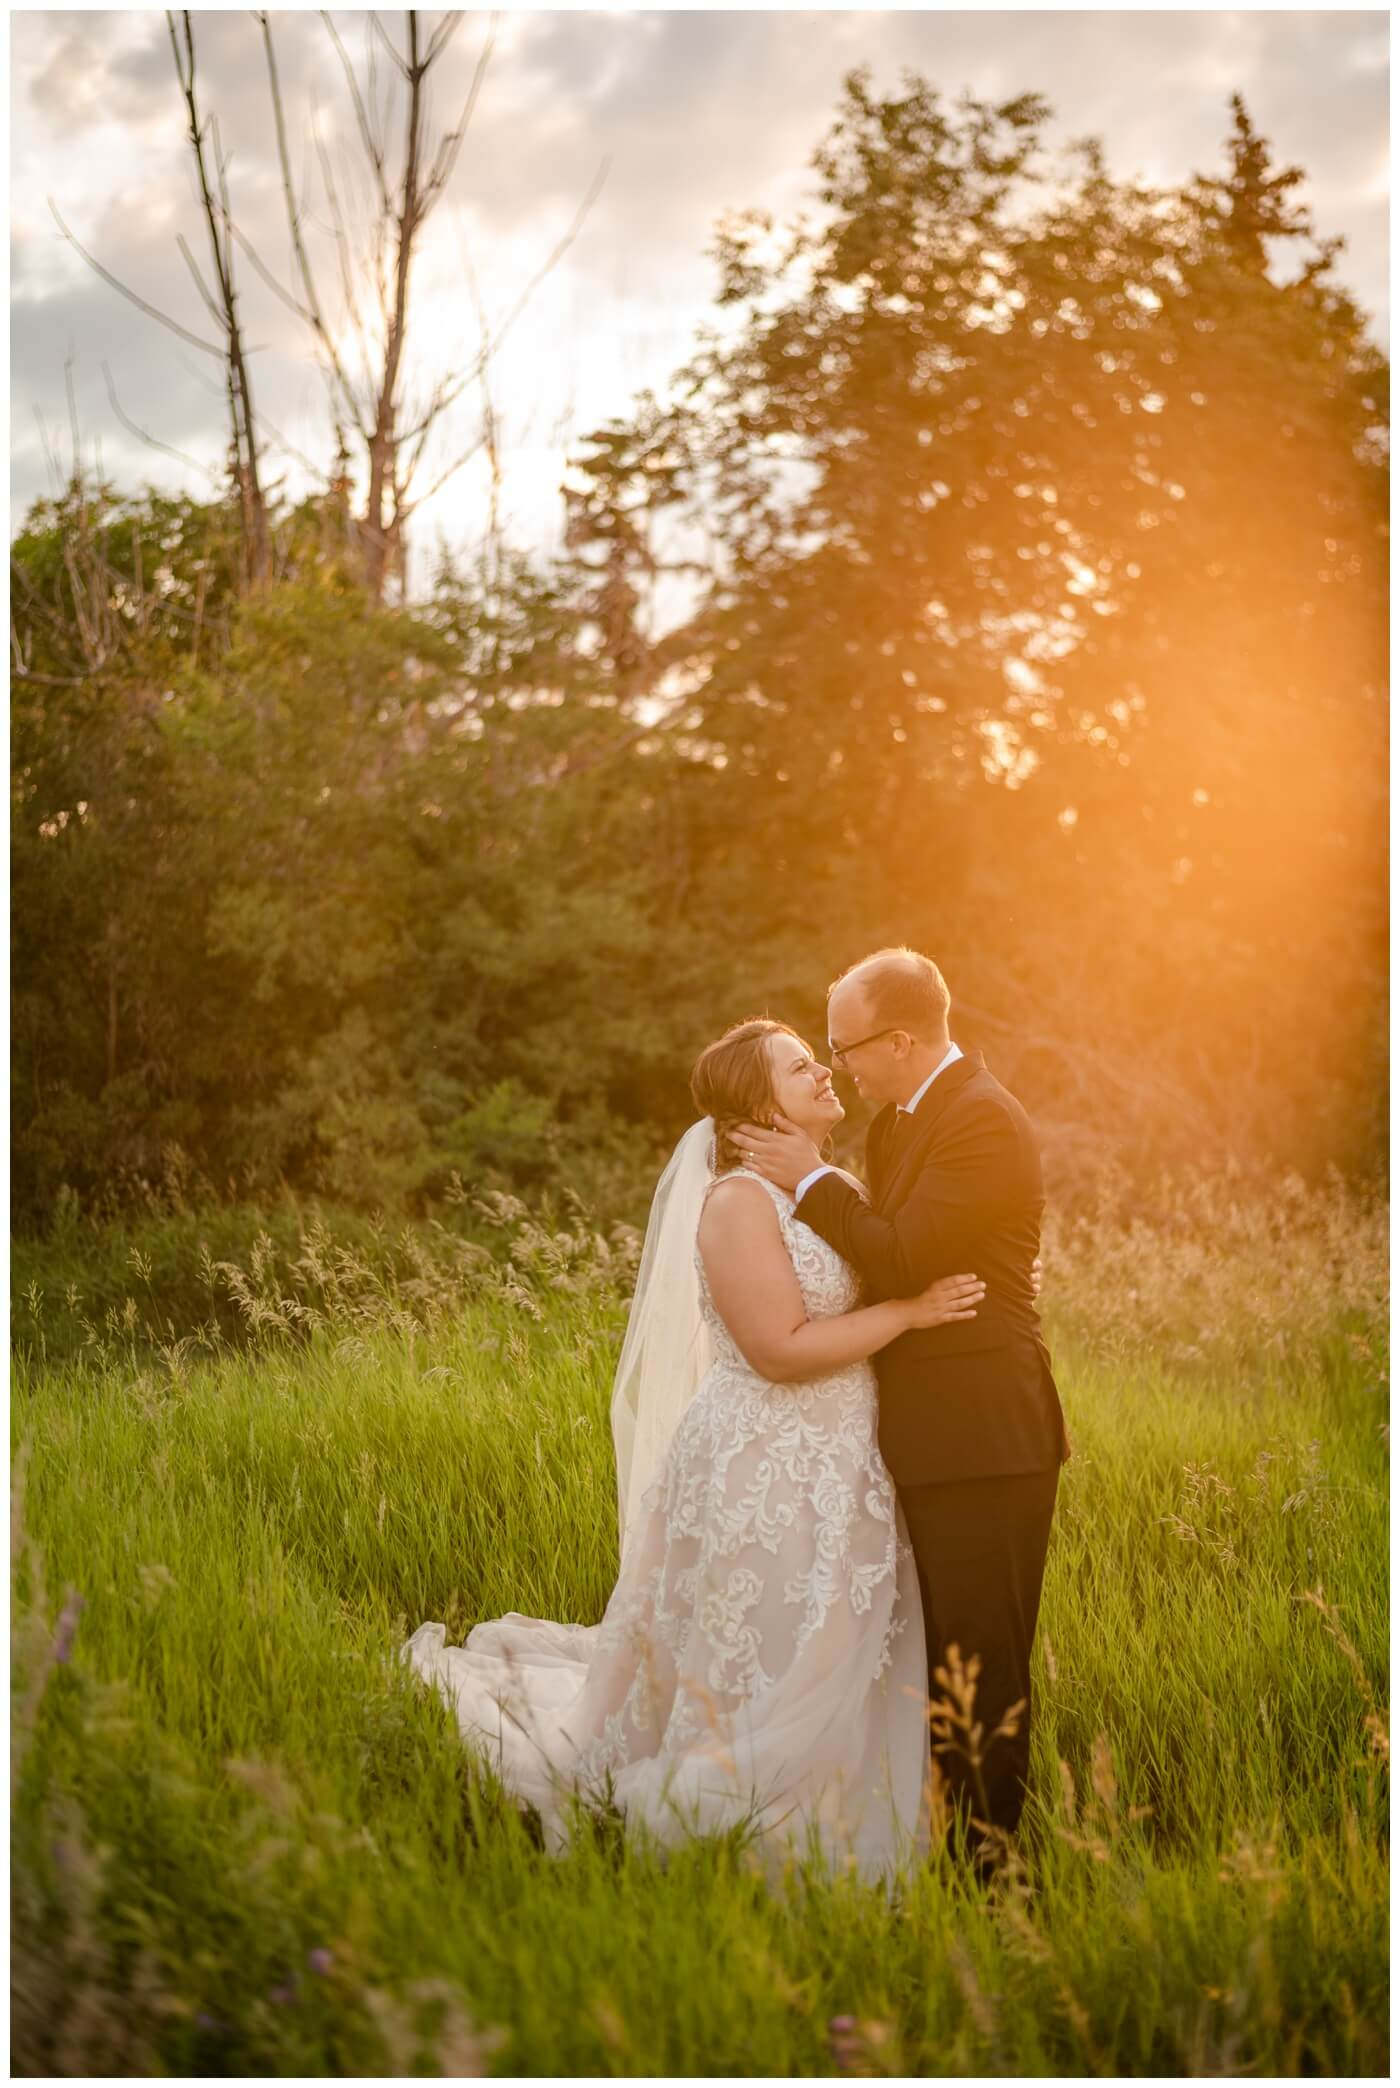 Colter & Jillyan - Encore Wedding Session - 09 - Bride & Groom kissing in field with sunflare at AE Wilson Park in Regina